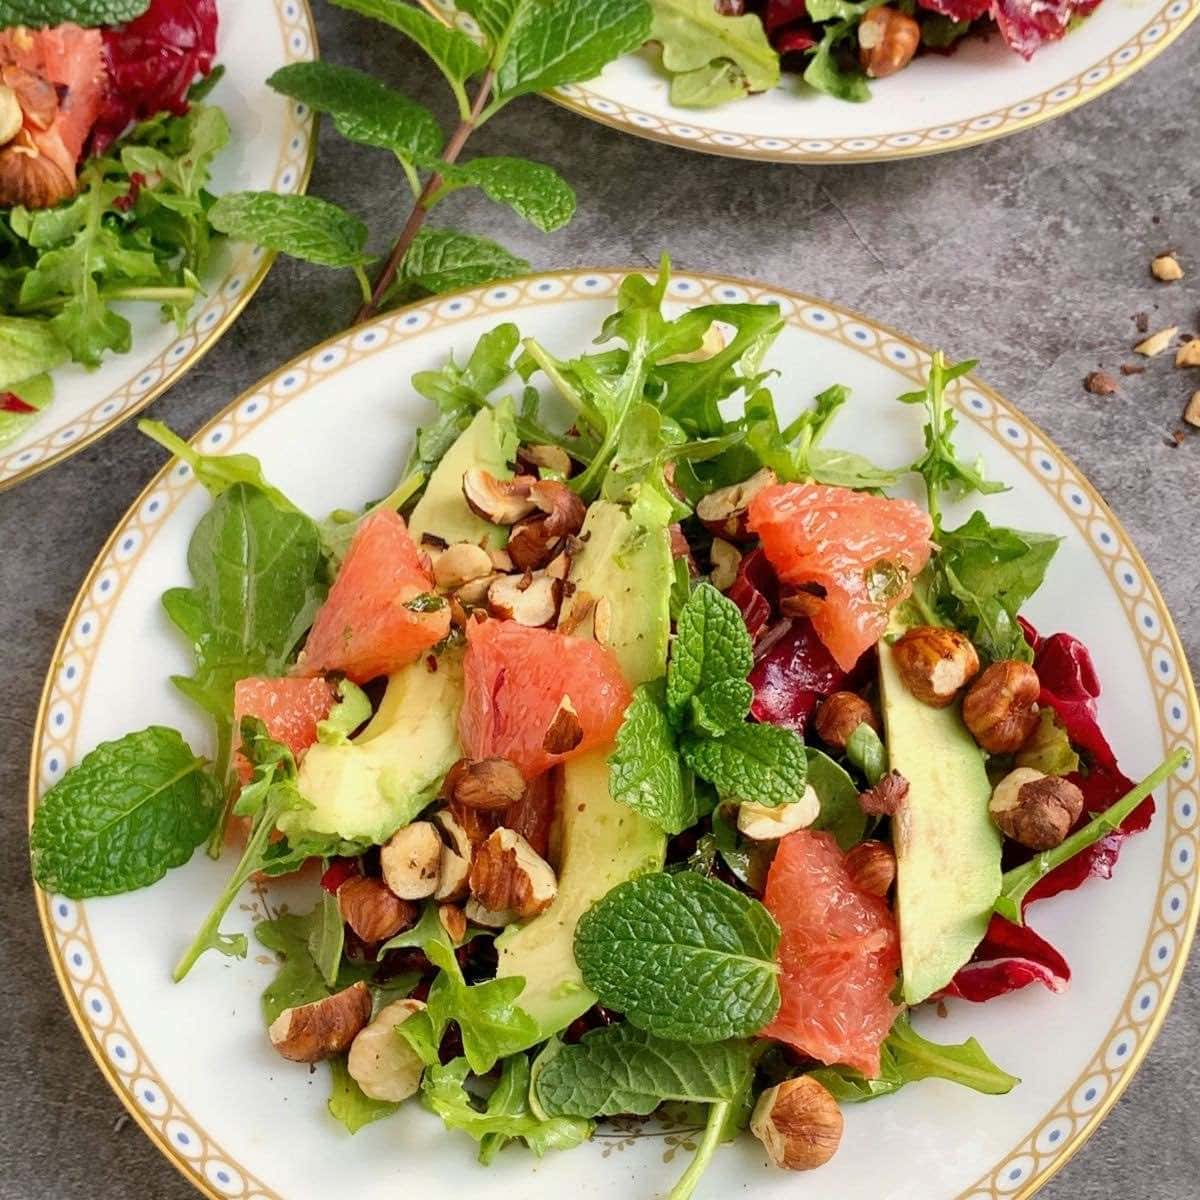 Grapefruit salad on a white plate topped with avocado and hazelnuts.